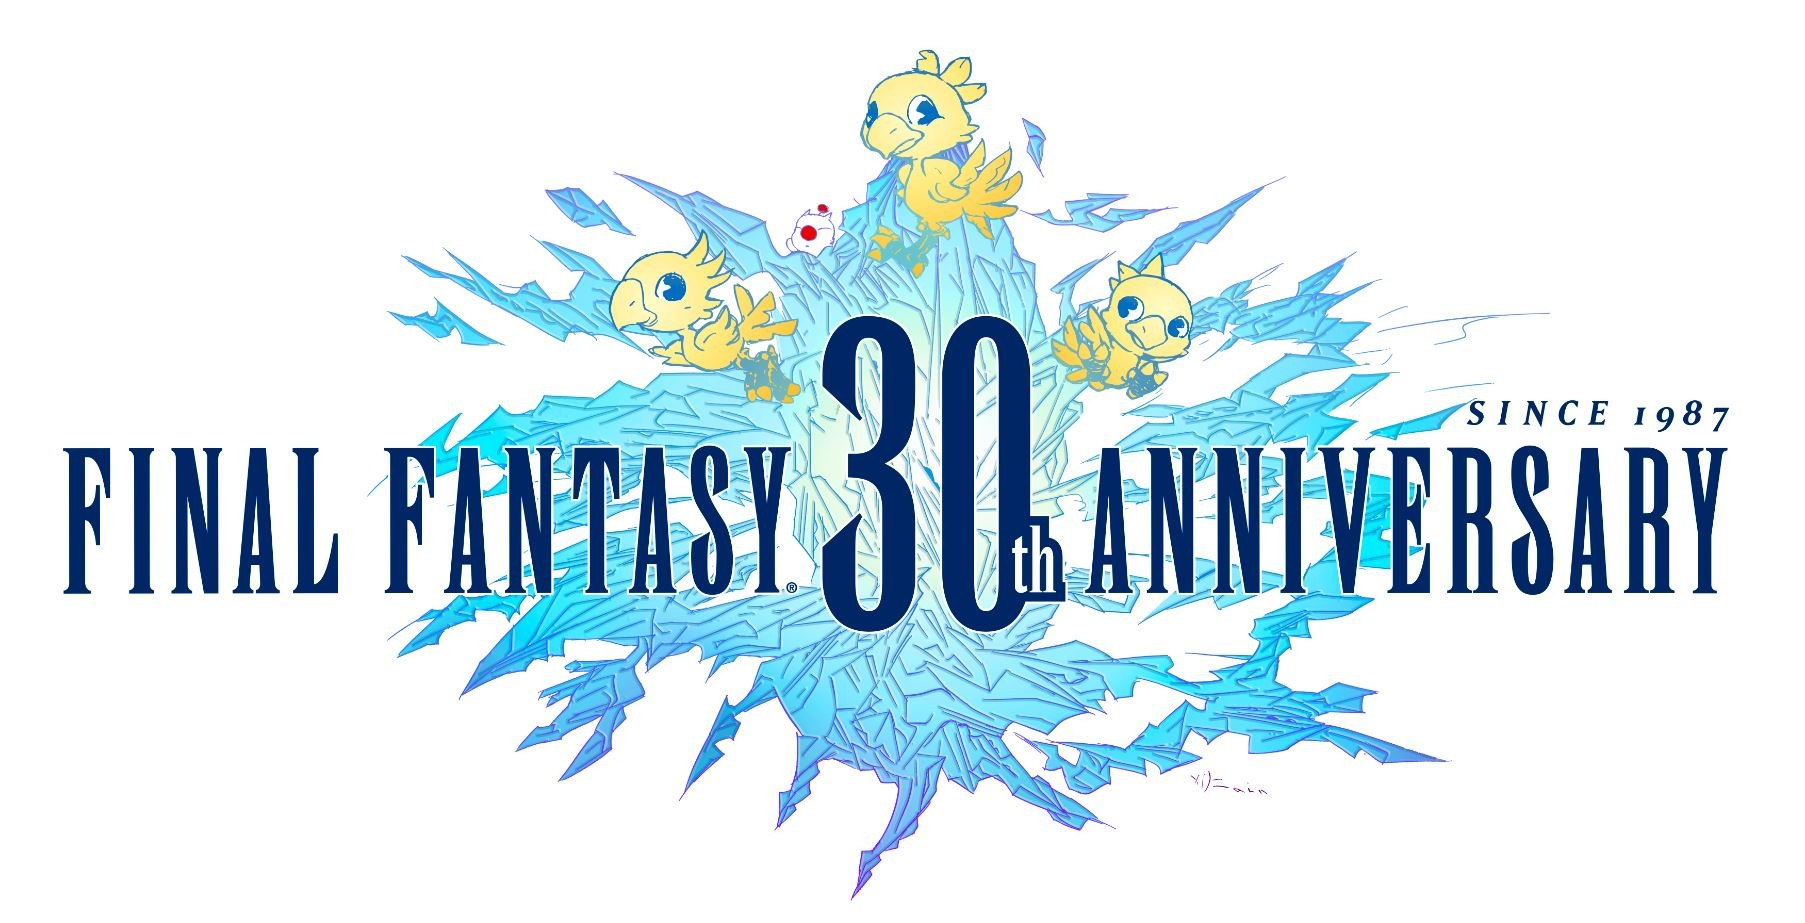 FINAL FANTASY 30TH ANNUAL